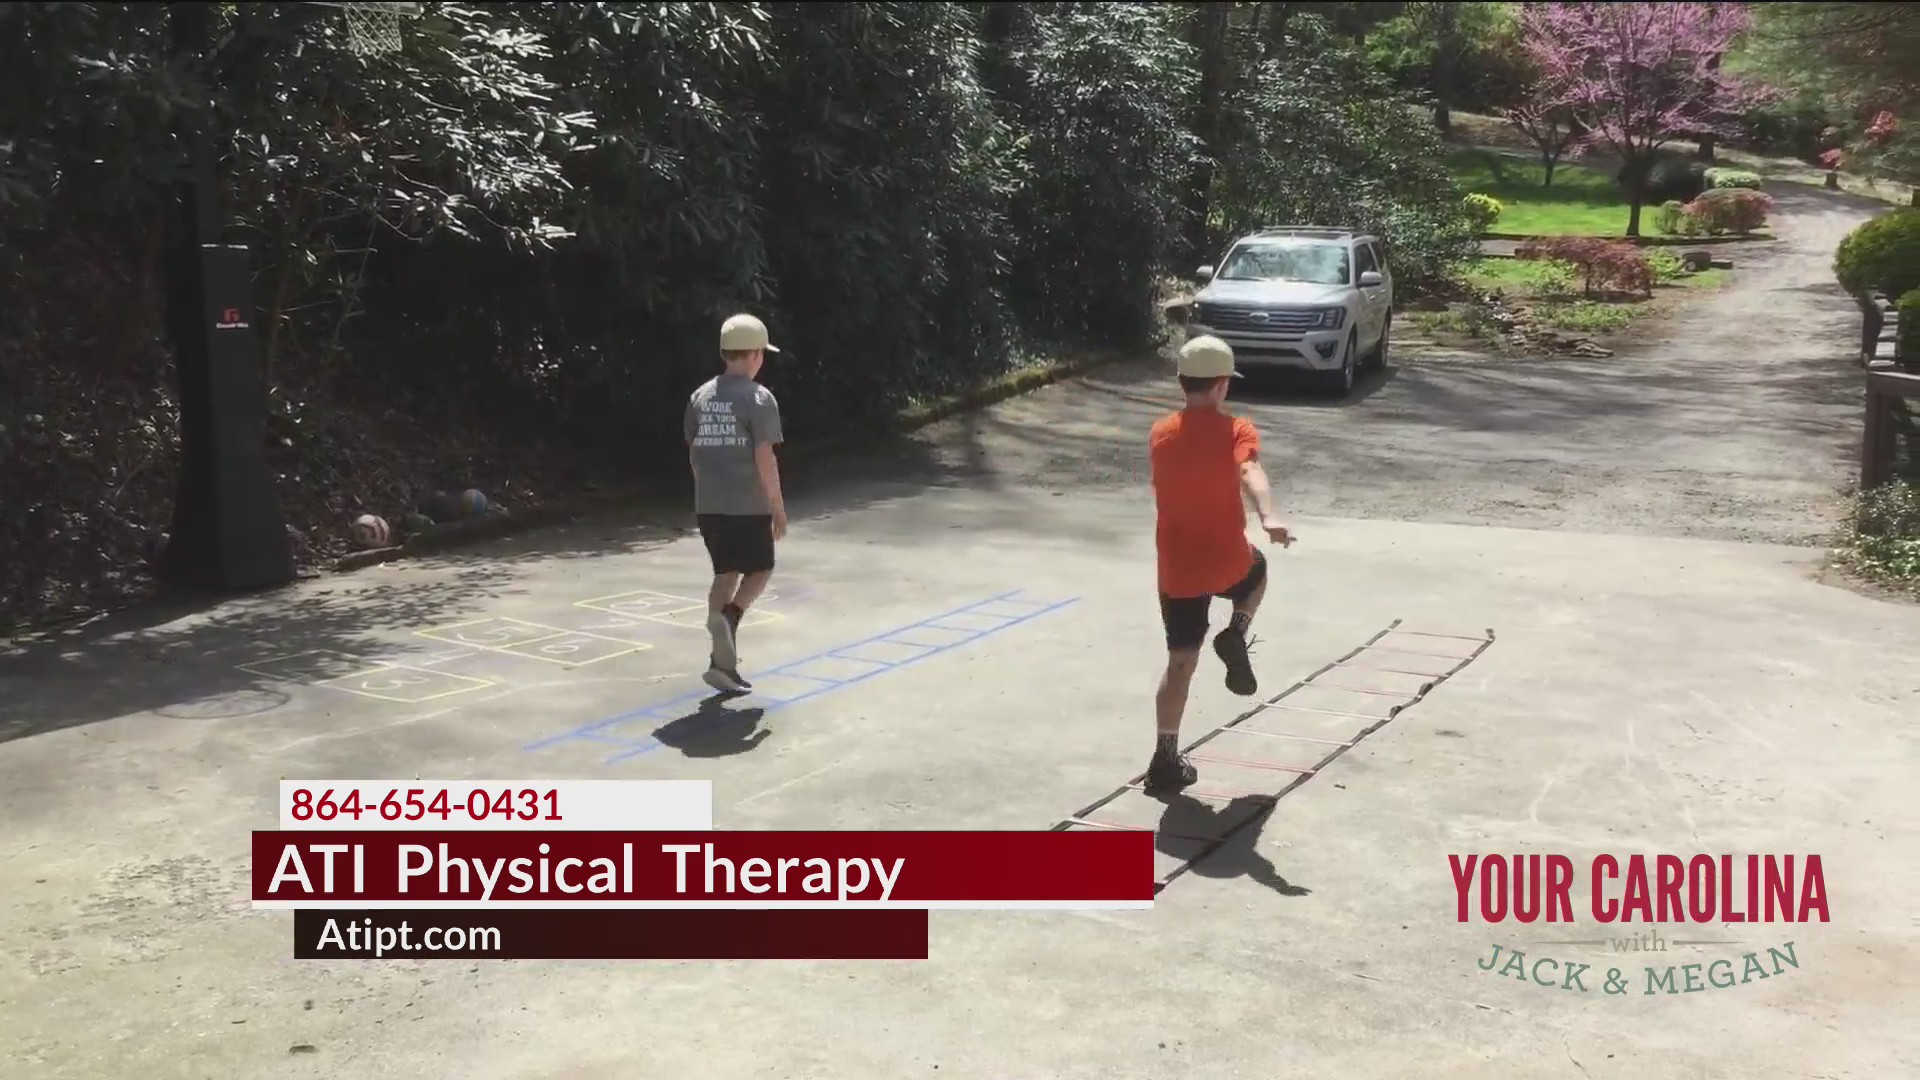 ATI Physical Therapy - Keeping The Kids Active